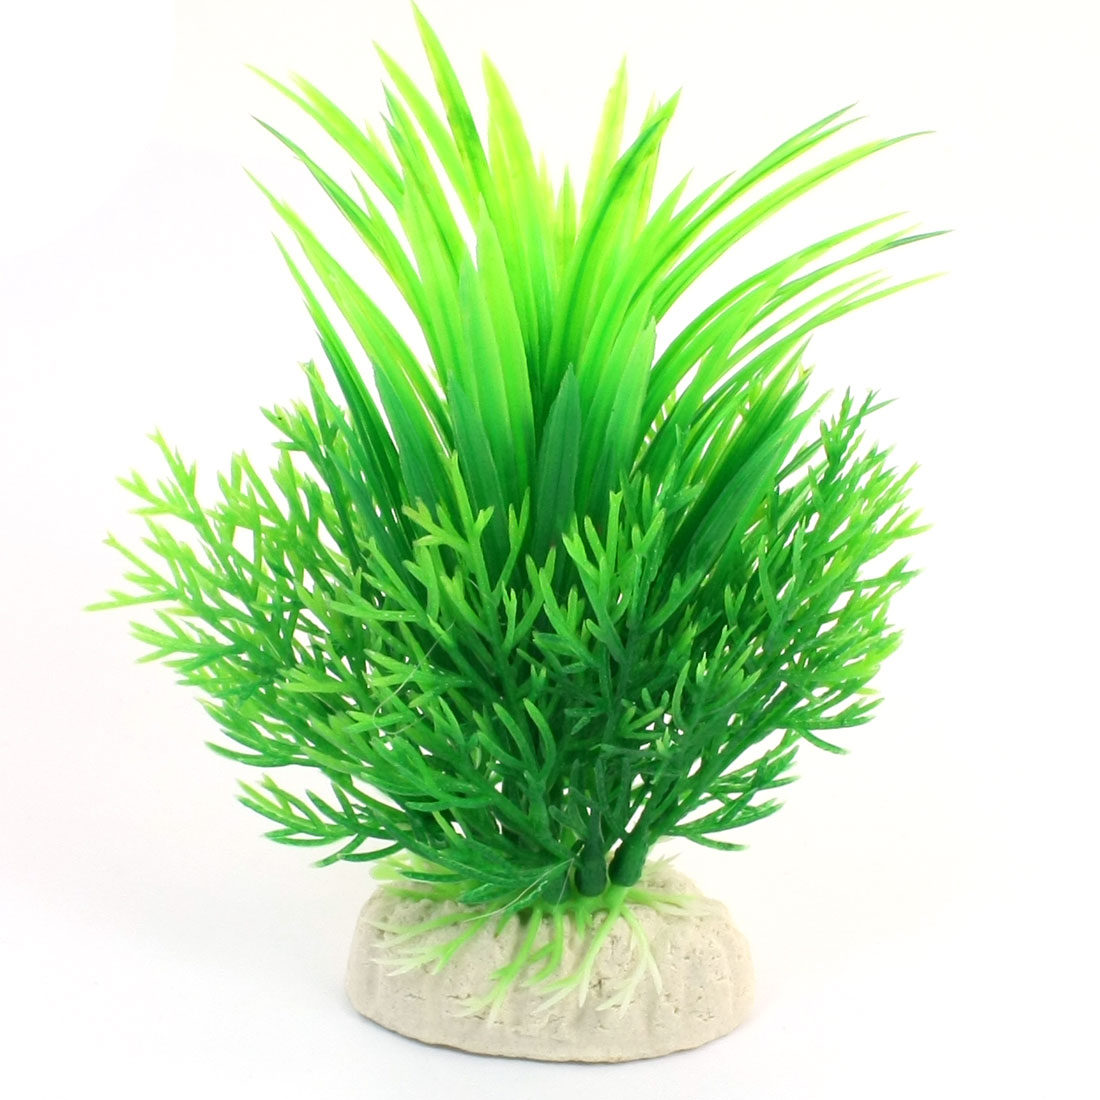 "Aquarium Fish Tank Landscaping Artificial Emulational Underwater Water Plant Grass Decor Green 5.7"" Height"